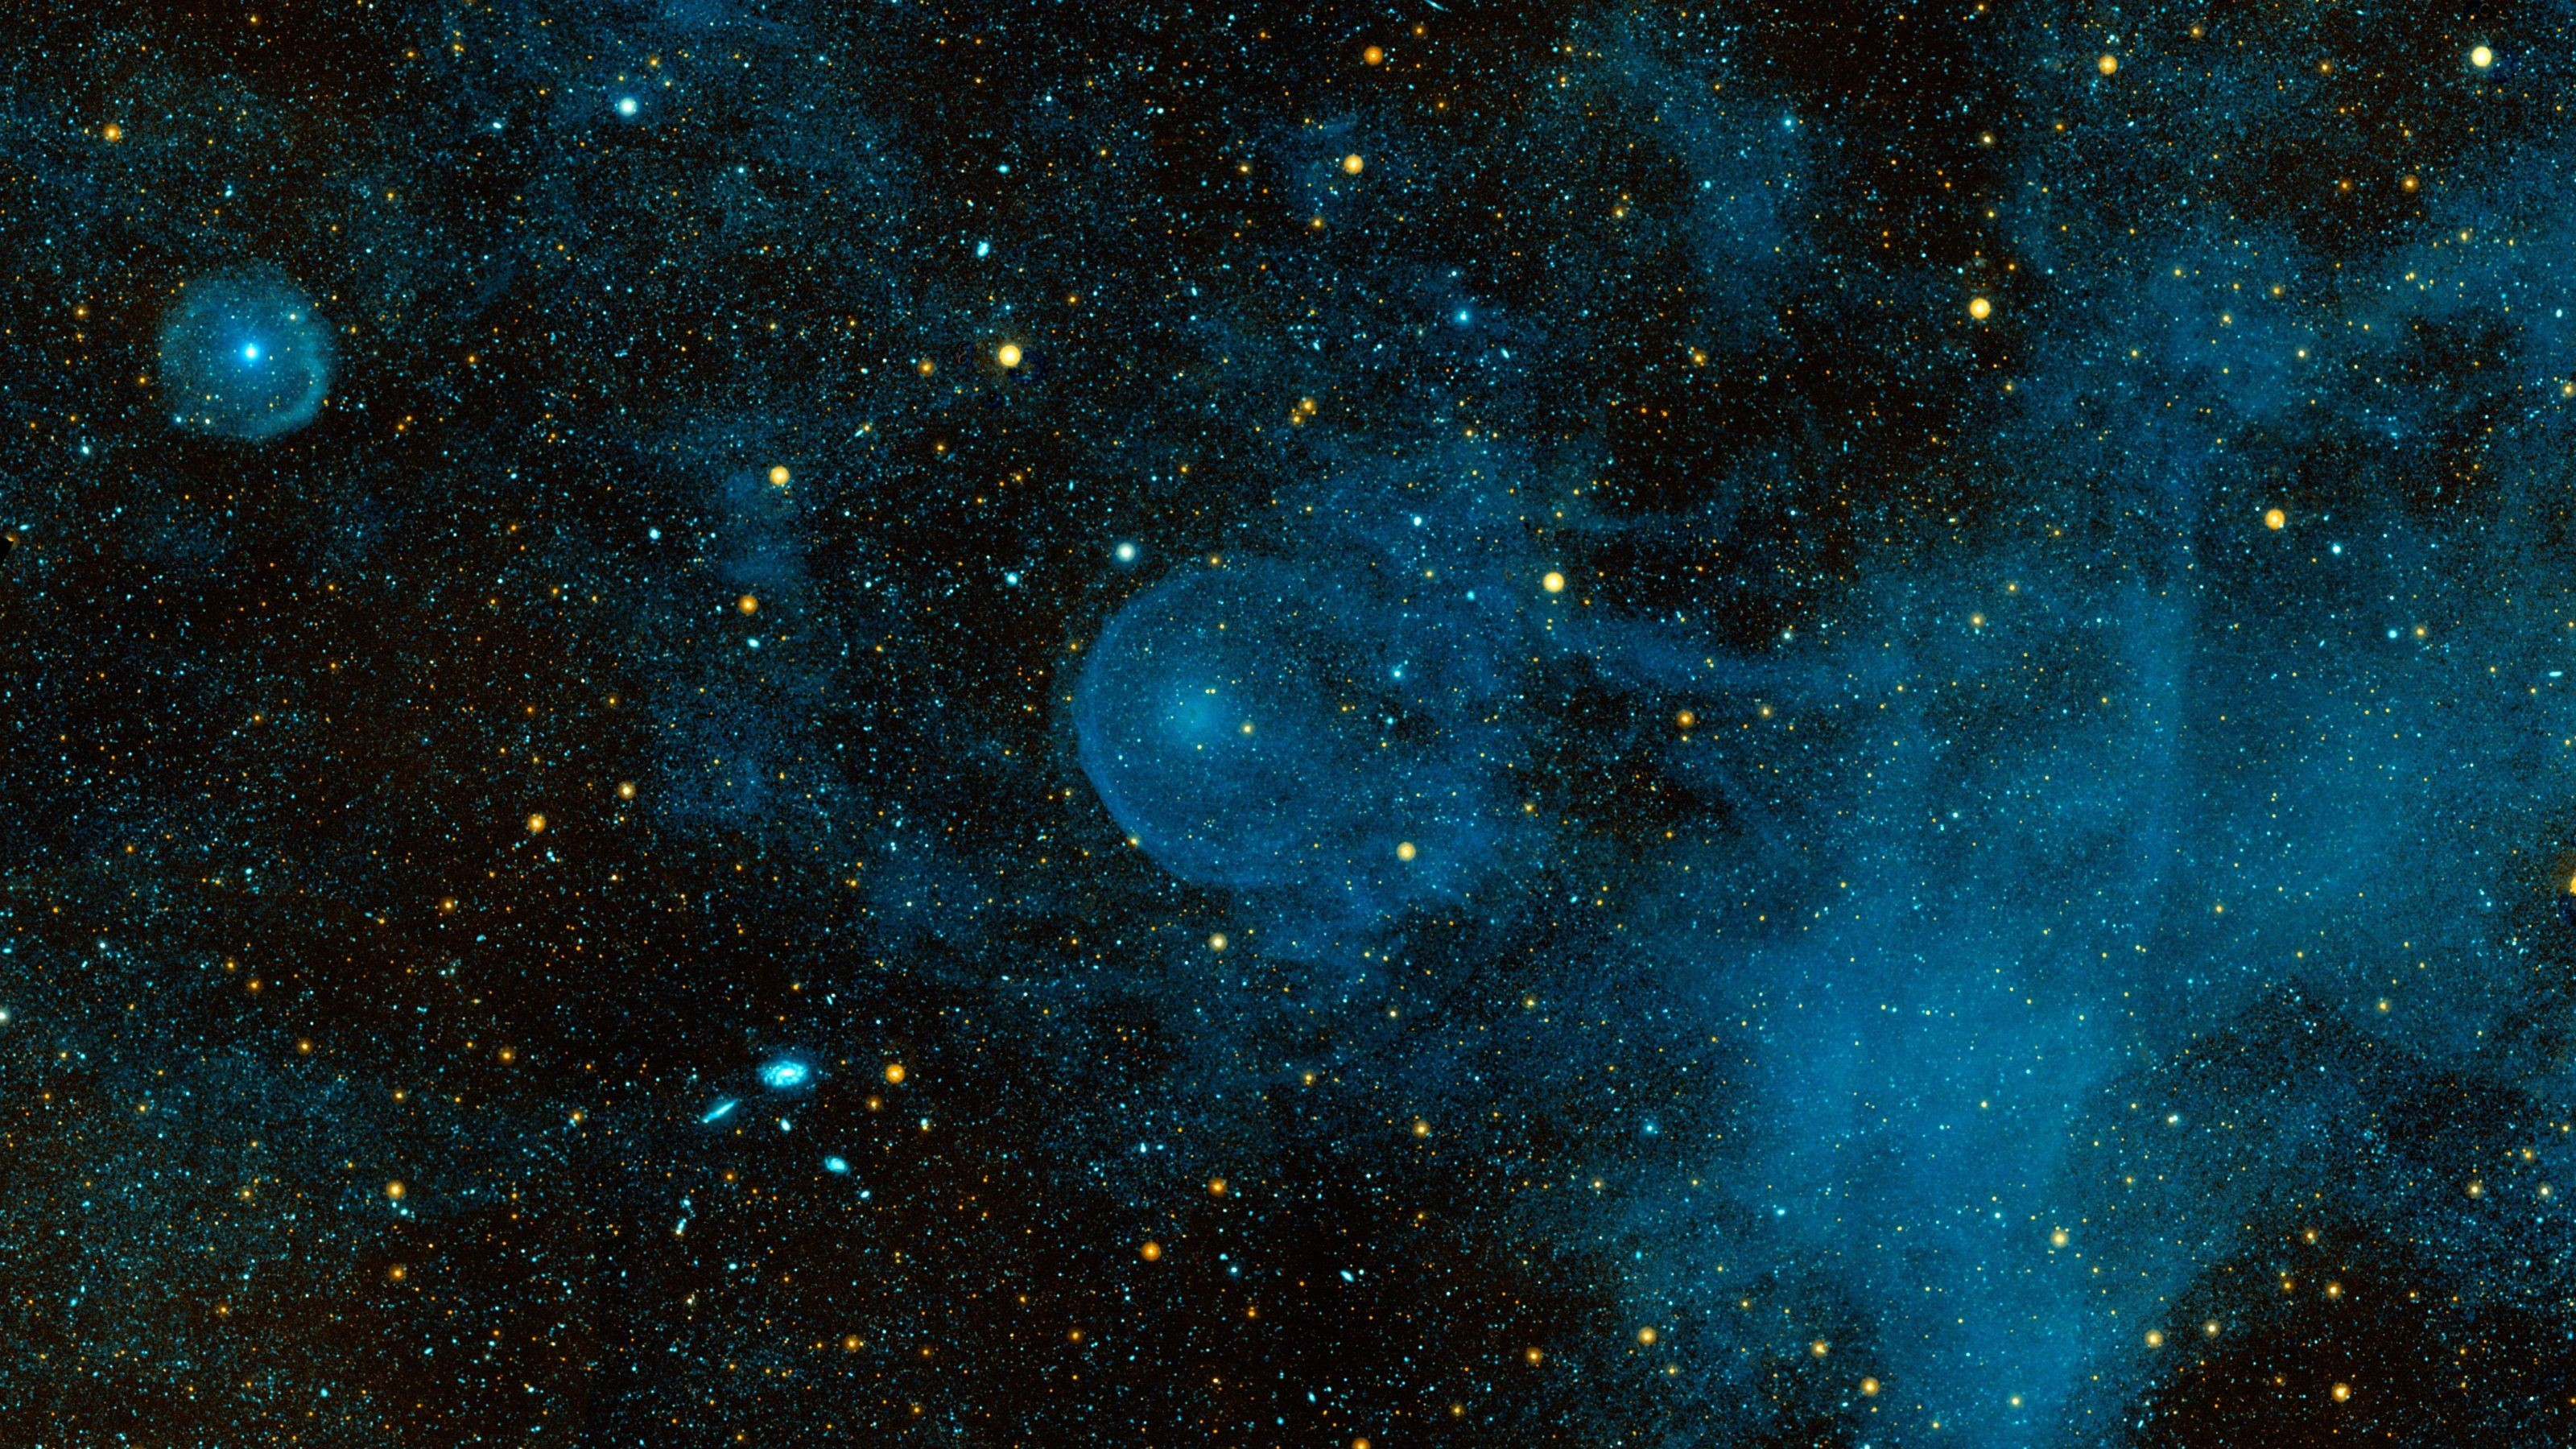 Space UHD Wallpaper, Picture, Image